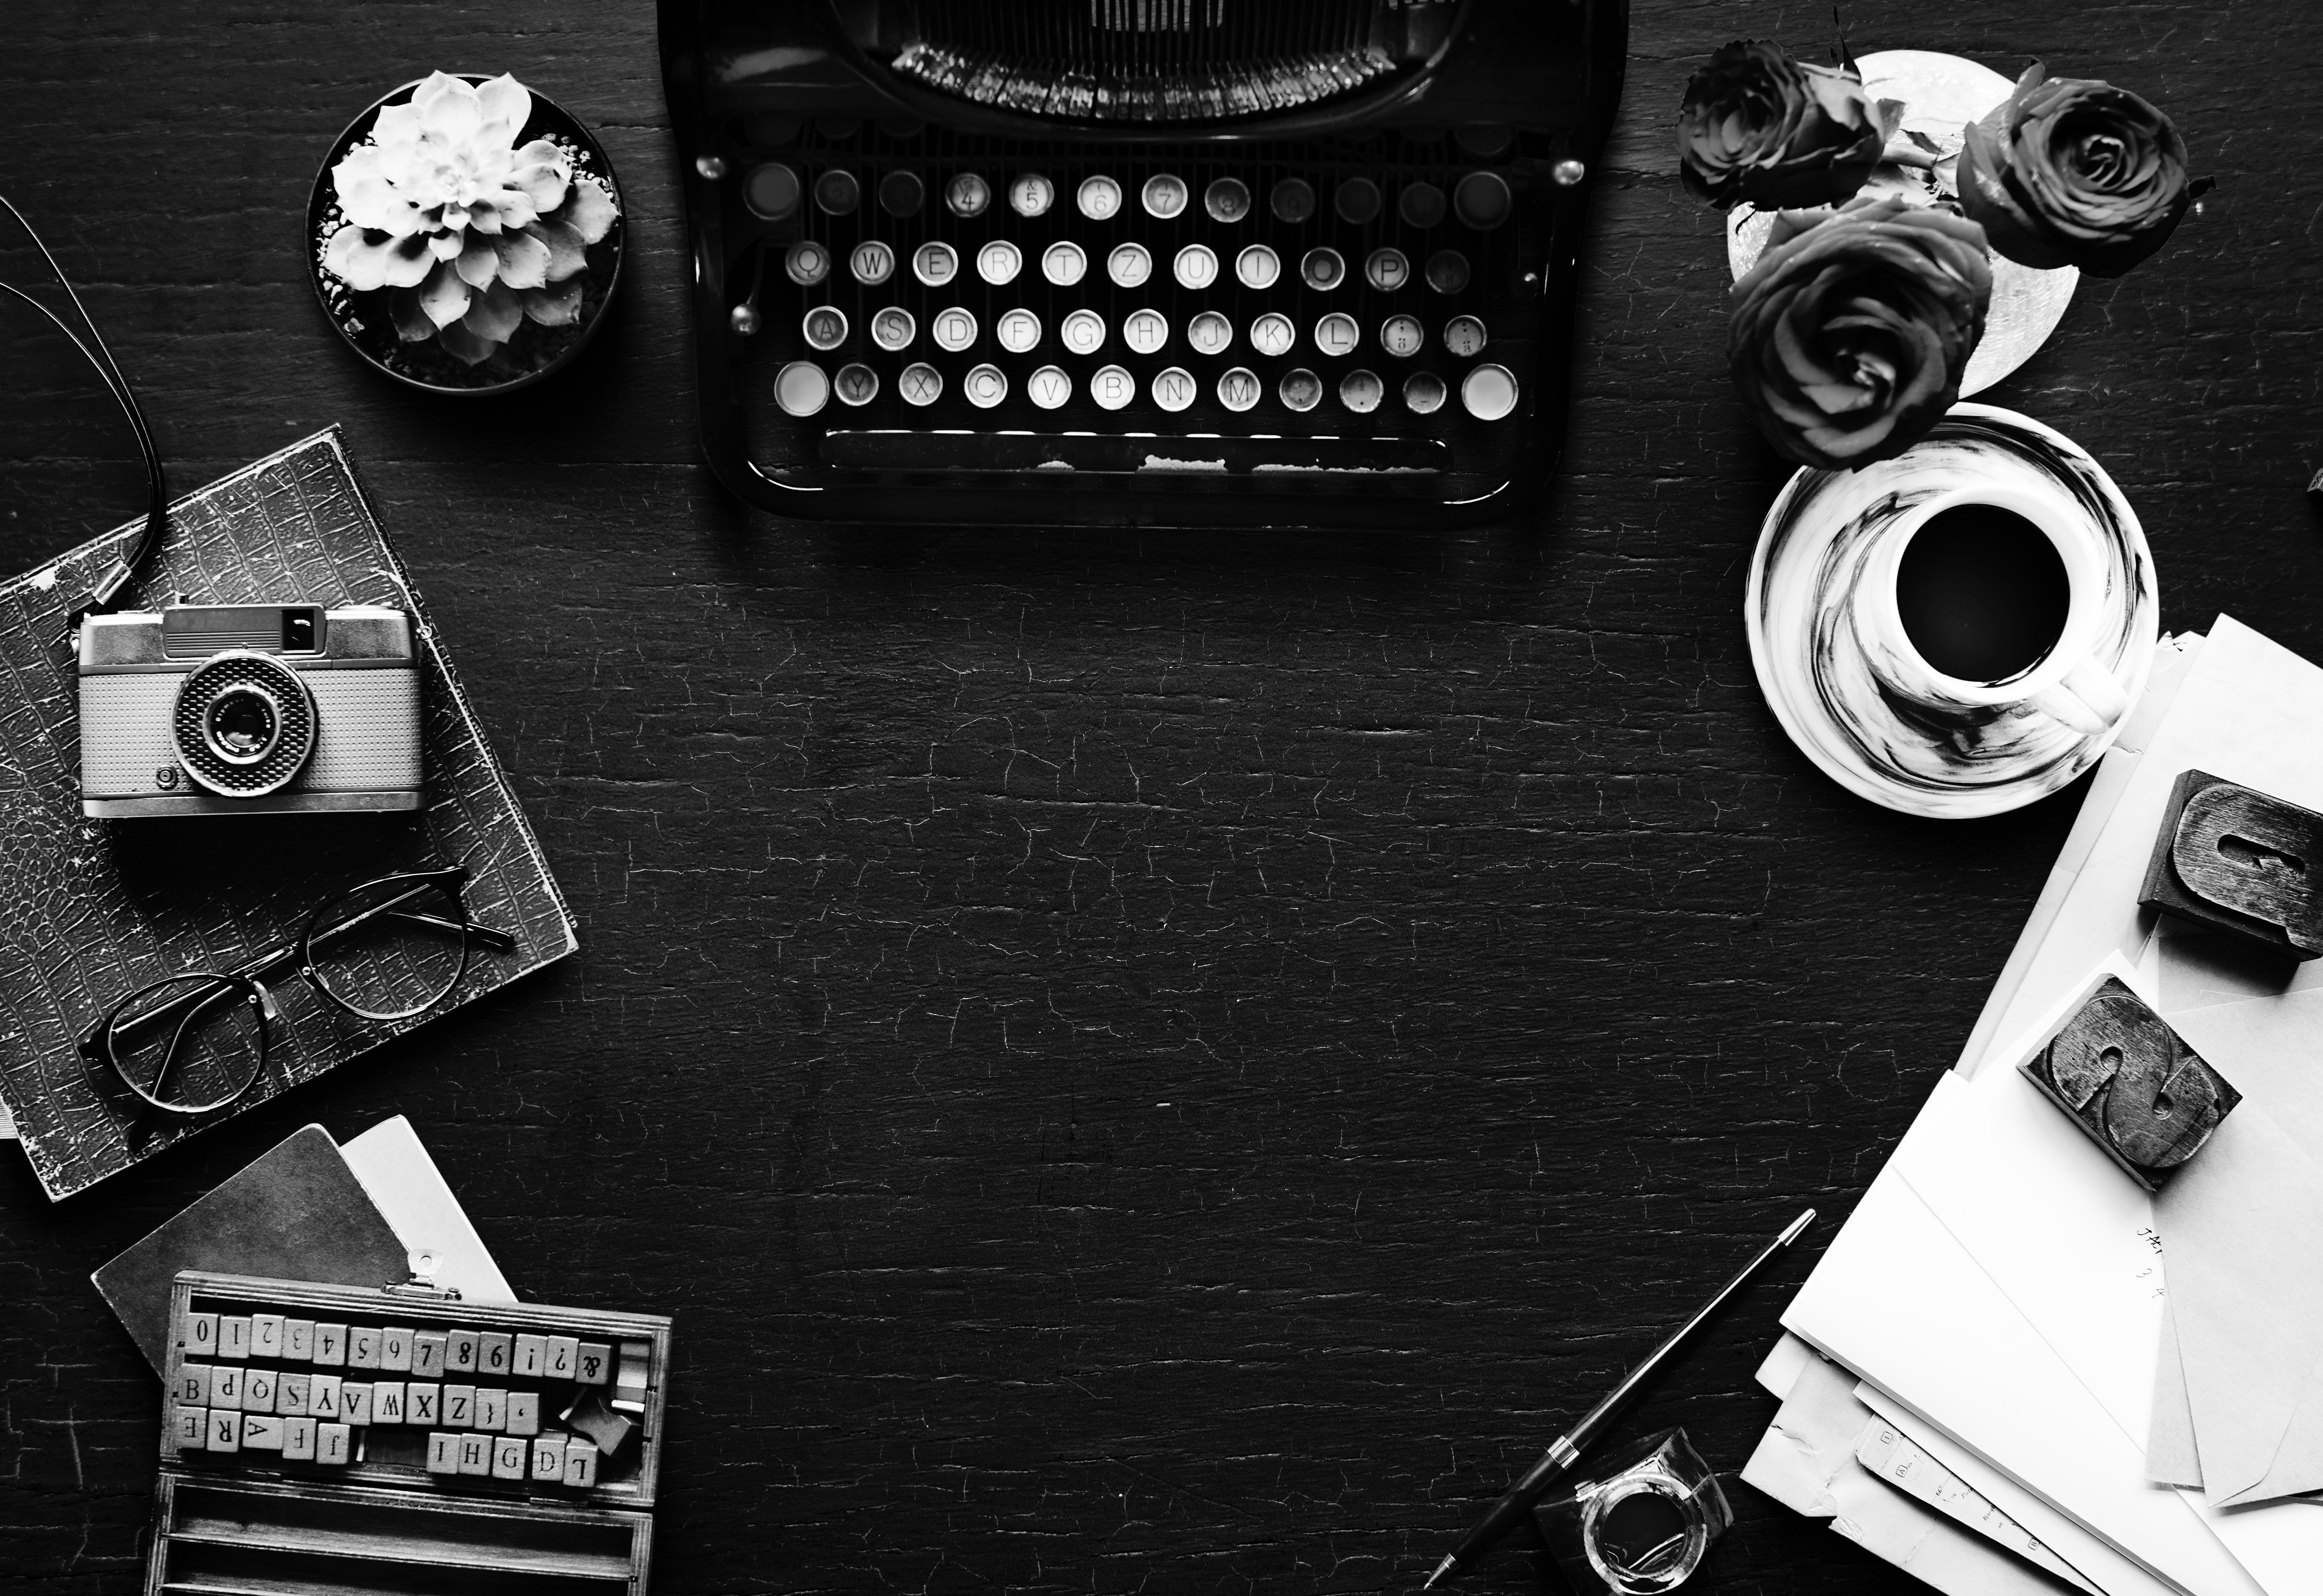 a desk with a typewriter, camera, and other items